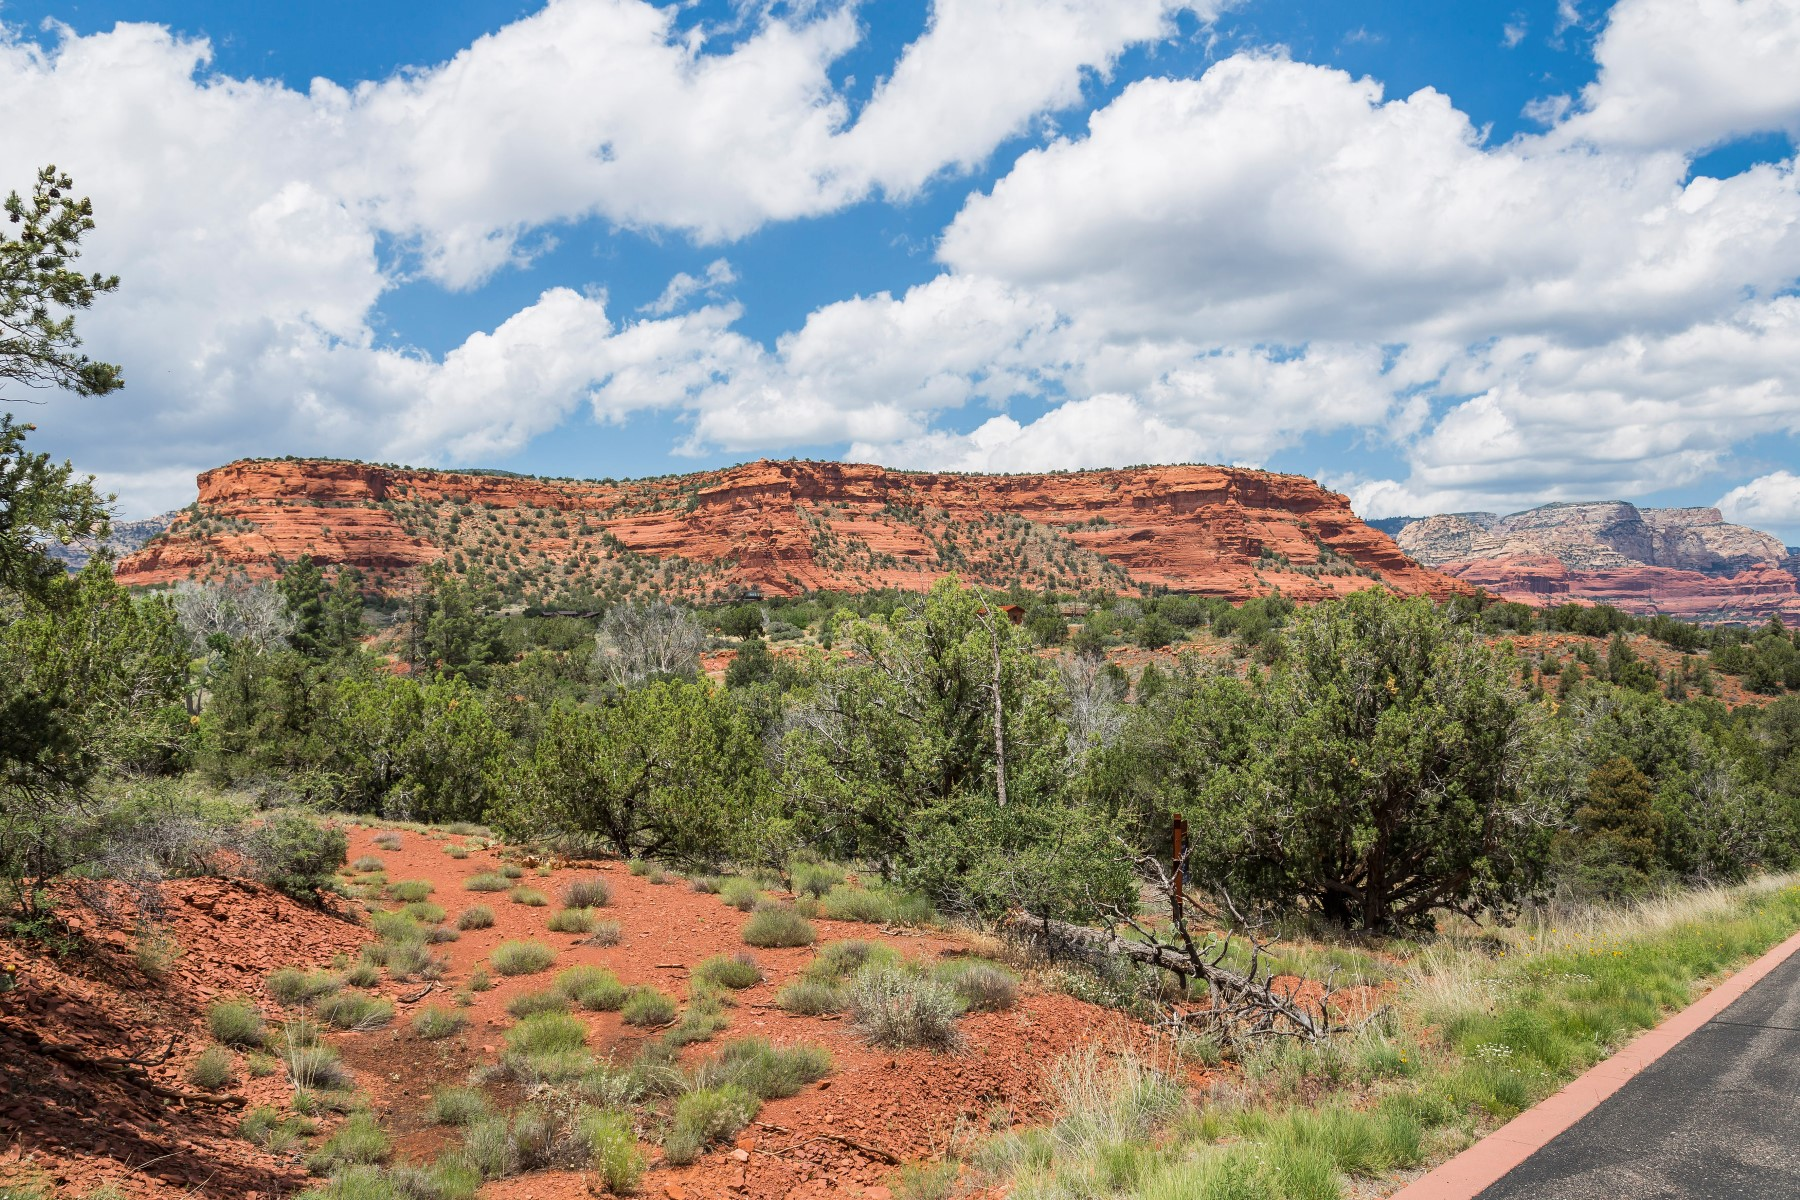 Land for Sale at Aerie Lot 20 - Gently sloped, very private lot with expansive red rock views. 150 Altair Ave 20 Sedona, Arizona, 86336 United States